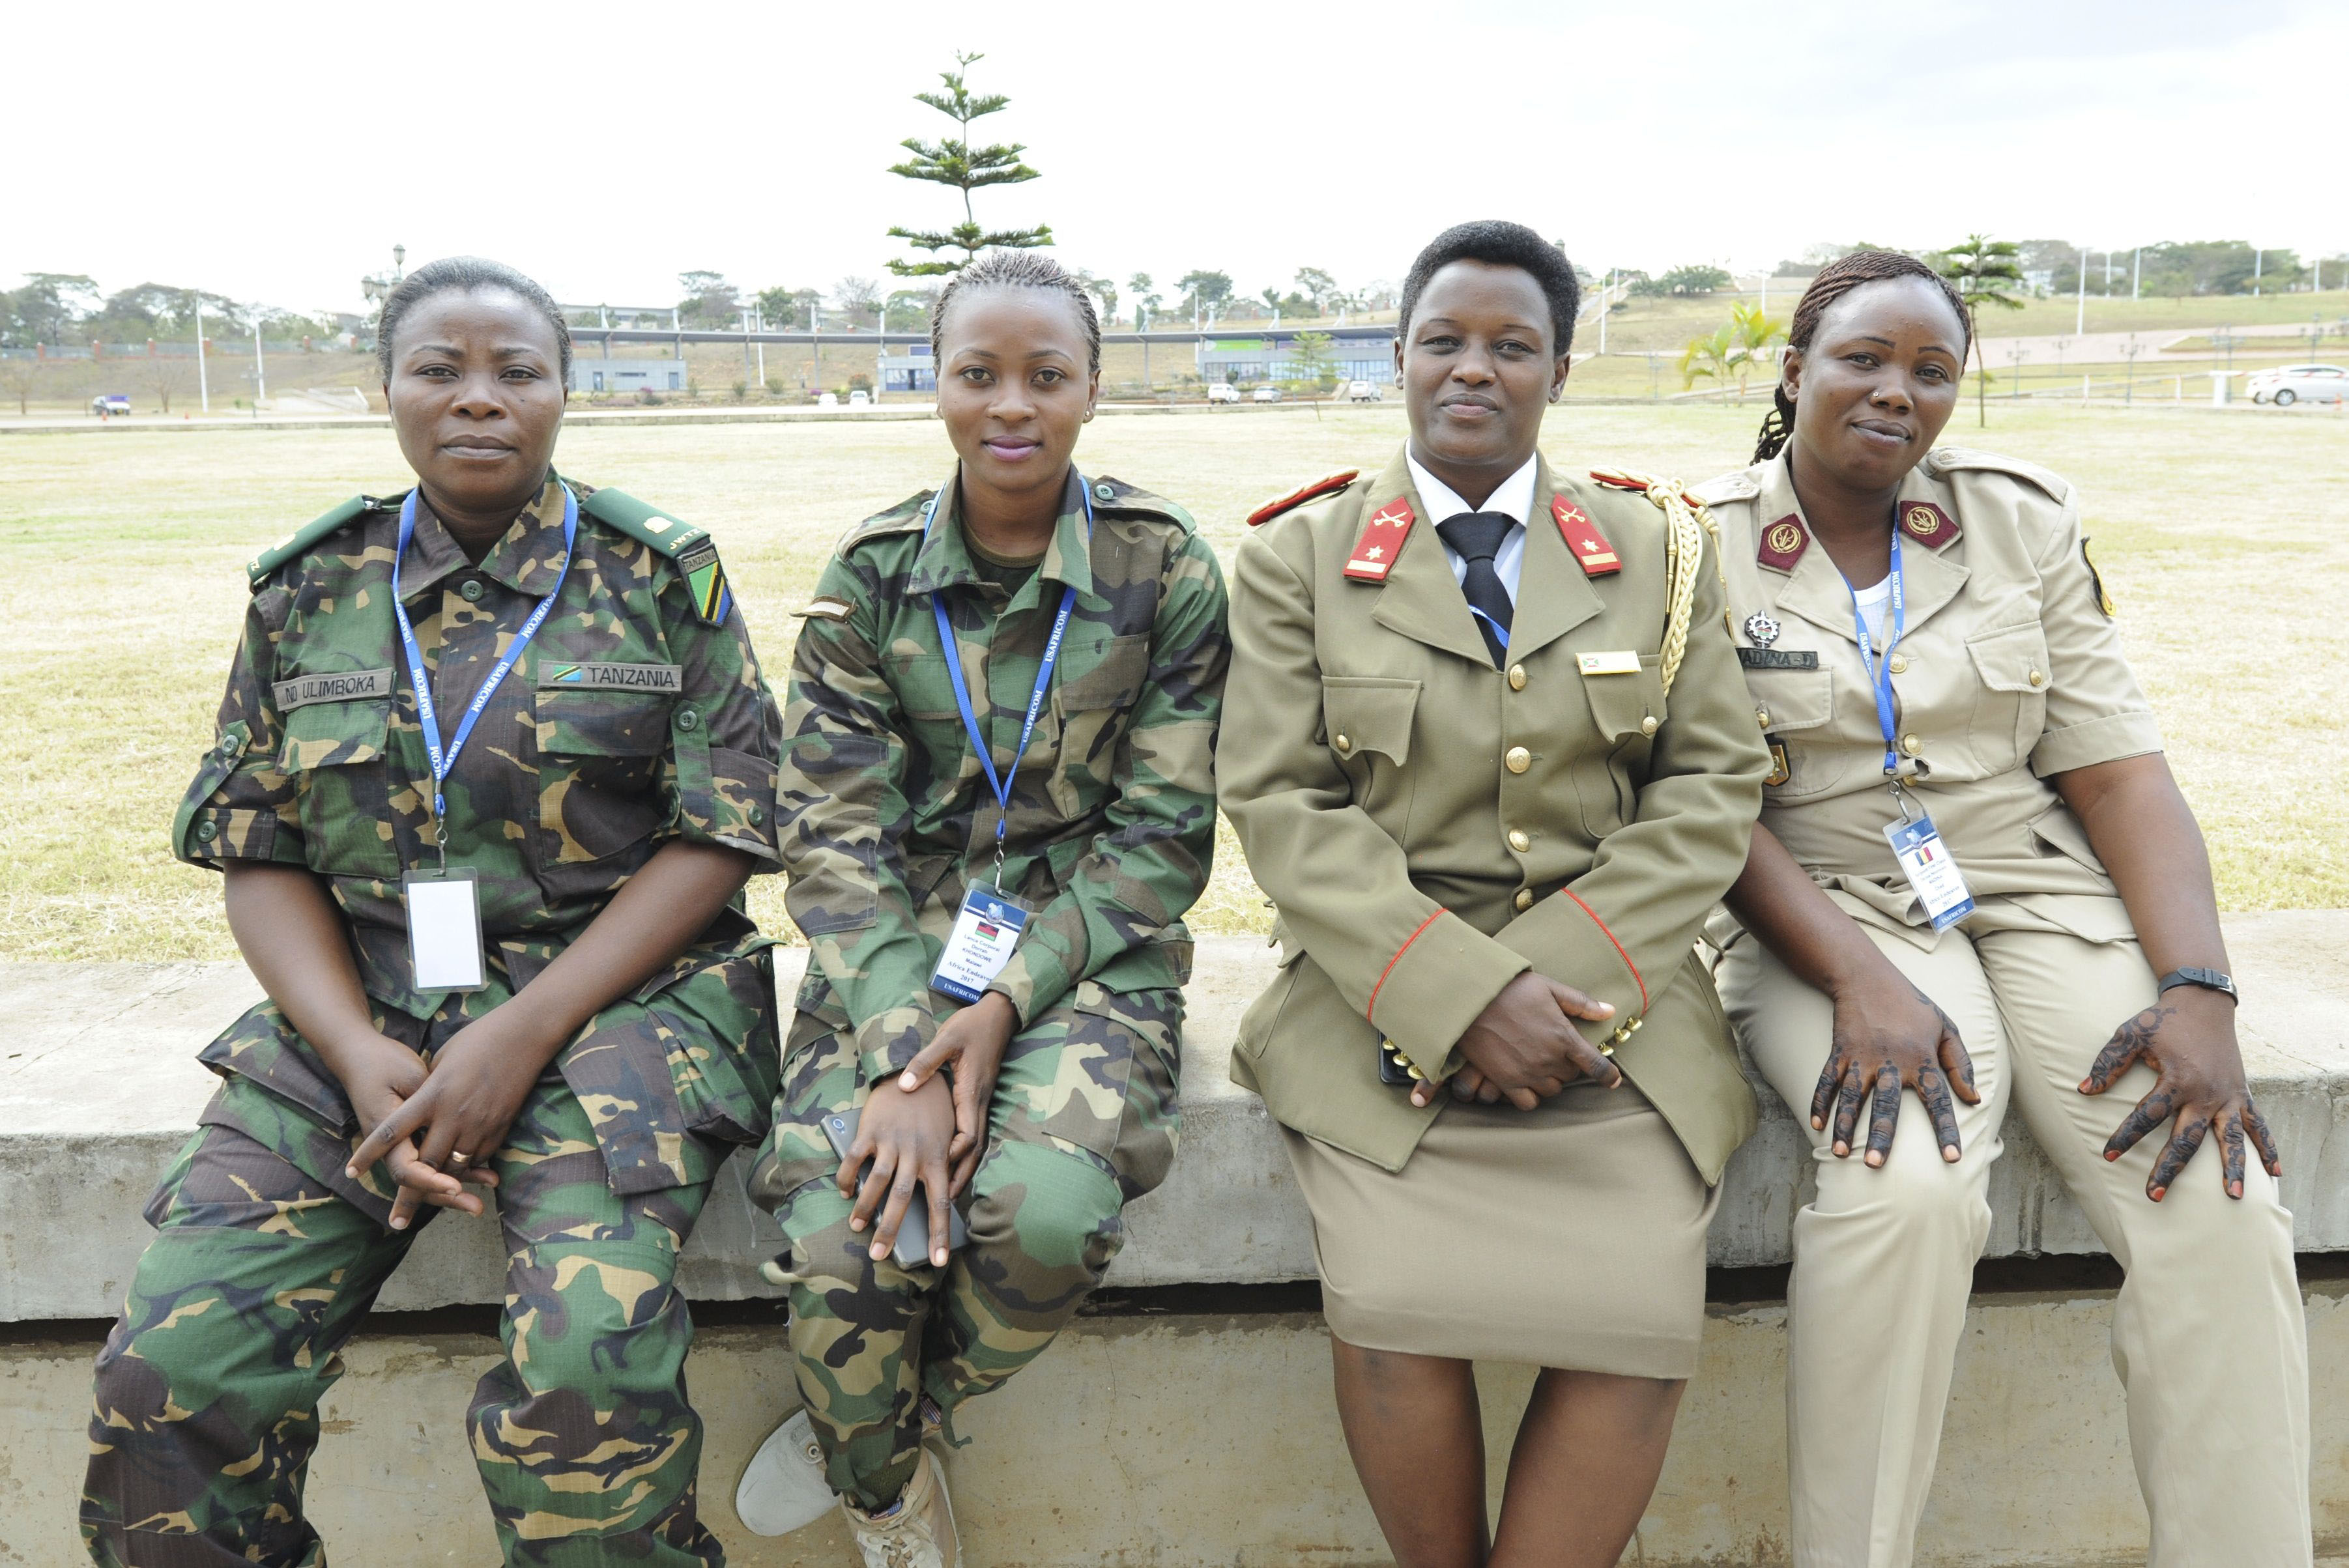 LILONGWE, Malawi (Aug. 22, 2017) – Women serving in the militaries of various U.S. Africa Command (AFRICOM) African partner nations pose for a photo during the AFRICOM sponsored senior leader symposium Africa Endeavor 2017 (AE17) in Lilongwe, Malawi. AE17 is an annual senior leader and communications symposium and technology expo designed to develop standardized, multinational communications practices for peacekeeping and disaster response missions mandated by the African Union and the United Nations. (Official Photo by U.S. Navy Mass Communication Specialist 2nd Class (SW/AW) Dominique Shelton/RELEASED)